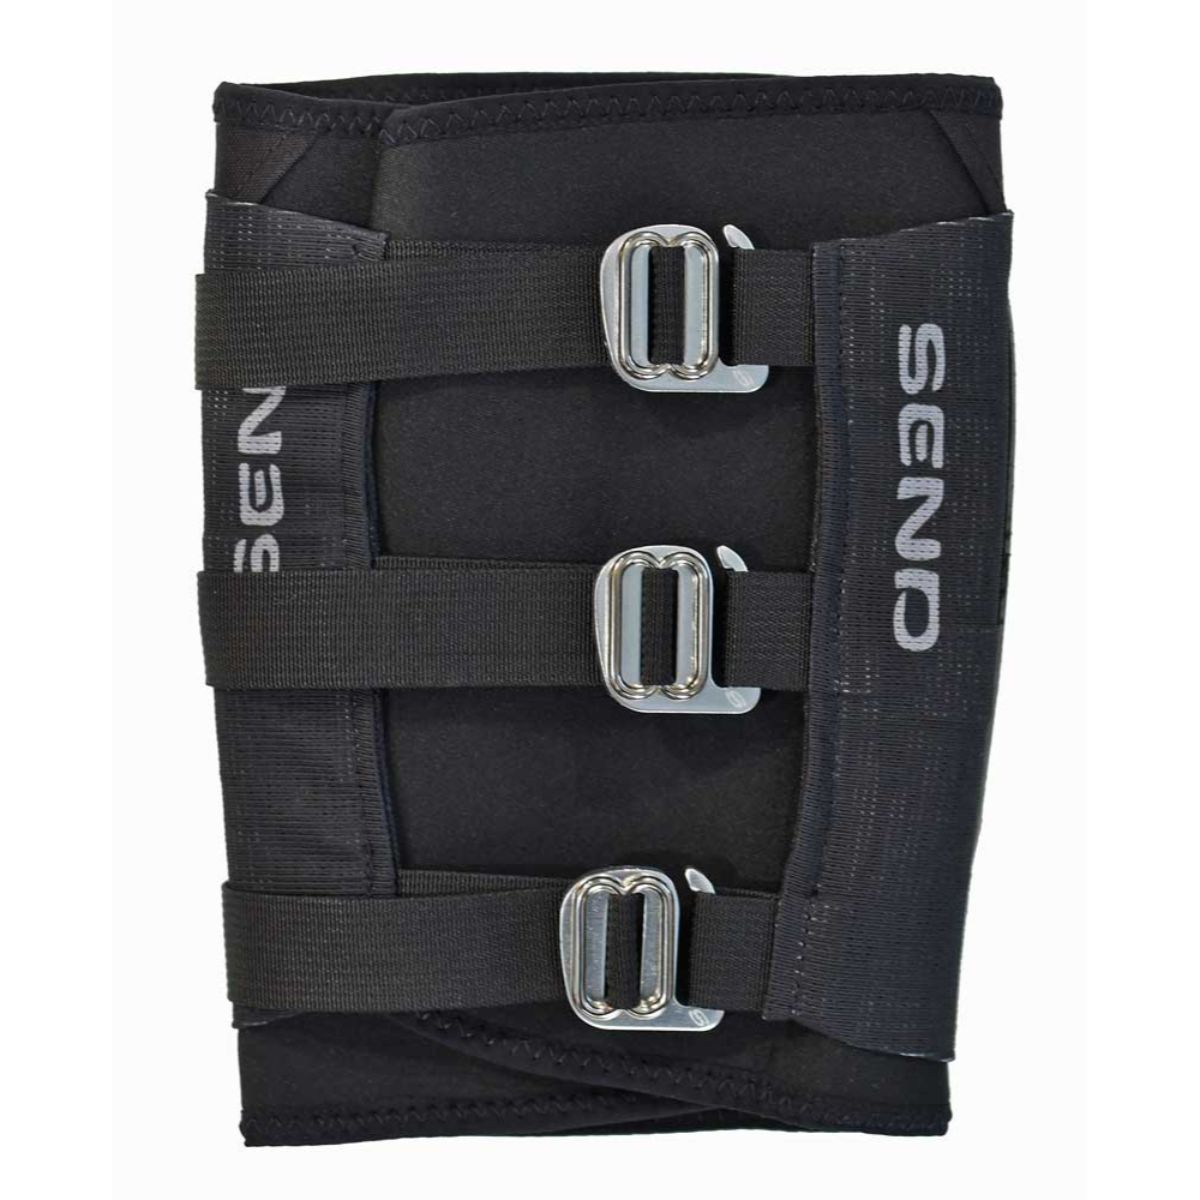 Send Kneepad Classic (Large)